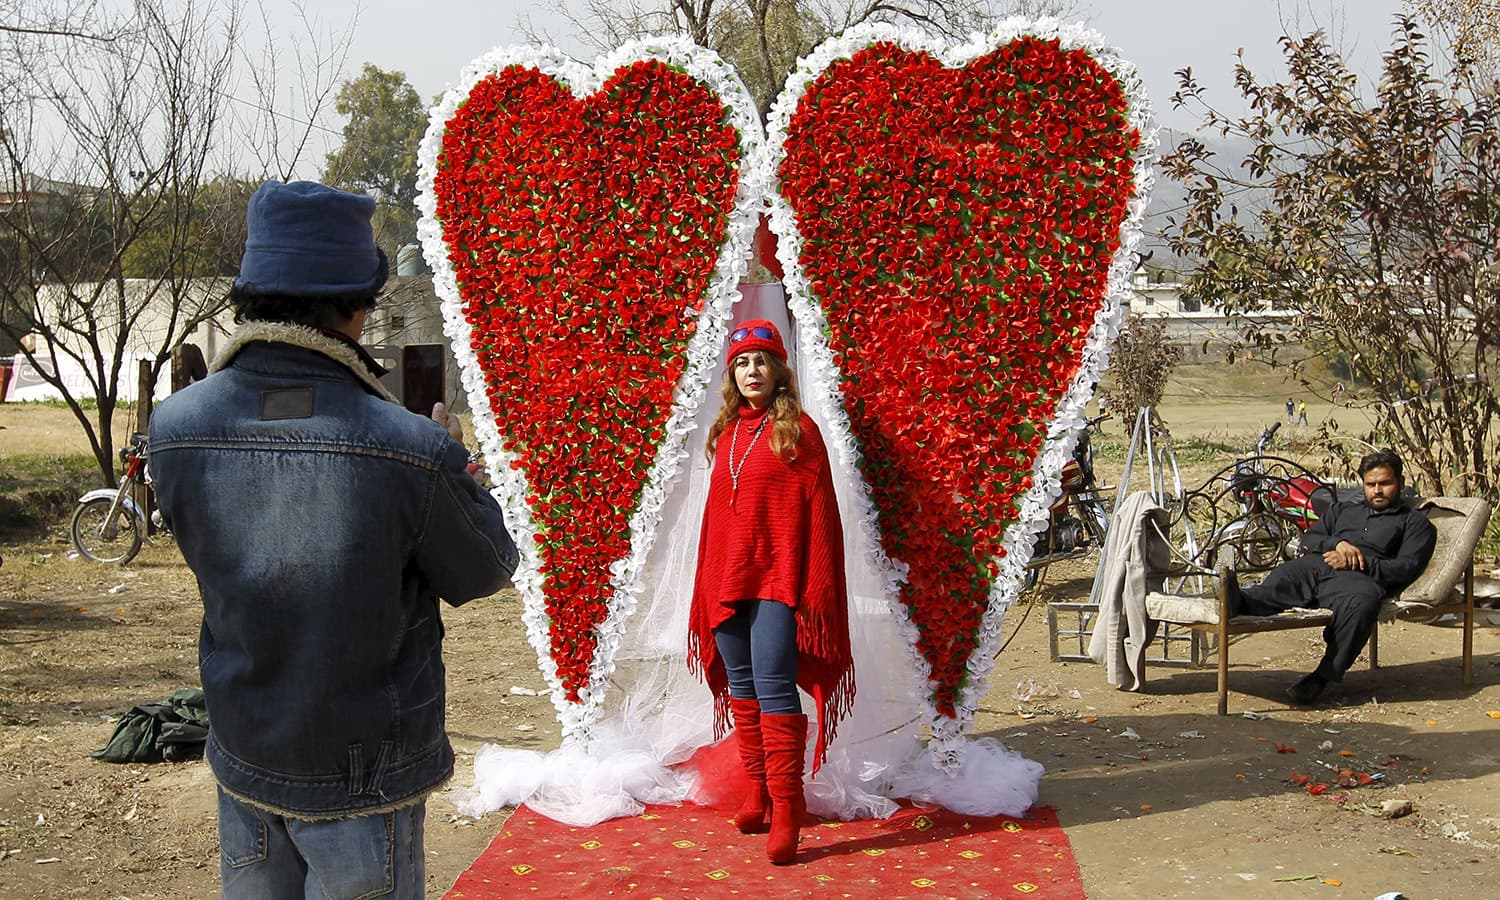 An Afghan man takes a picture of his sister in front of large heart shaped flower arrangement at a flower market on Valentine's Day in Islamabad.─Reuters